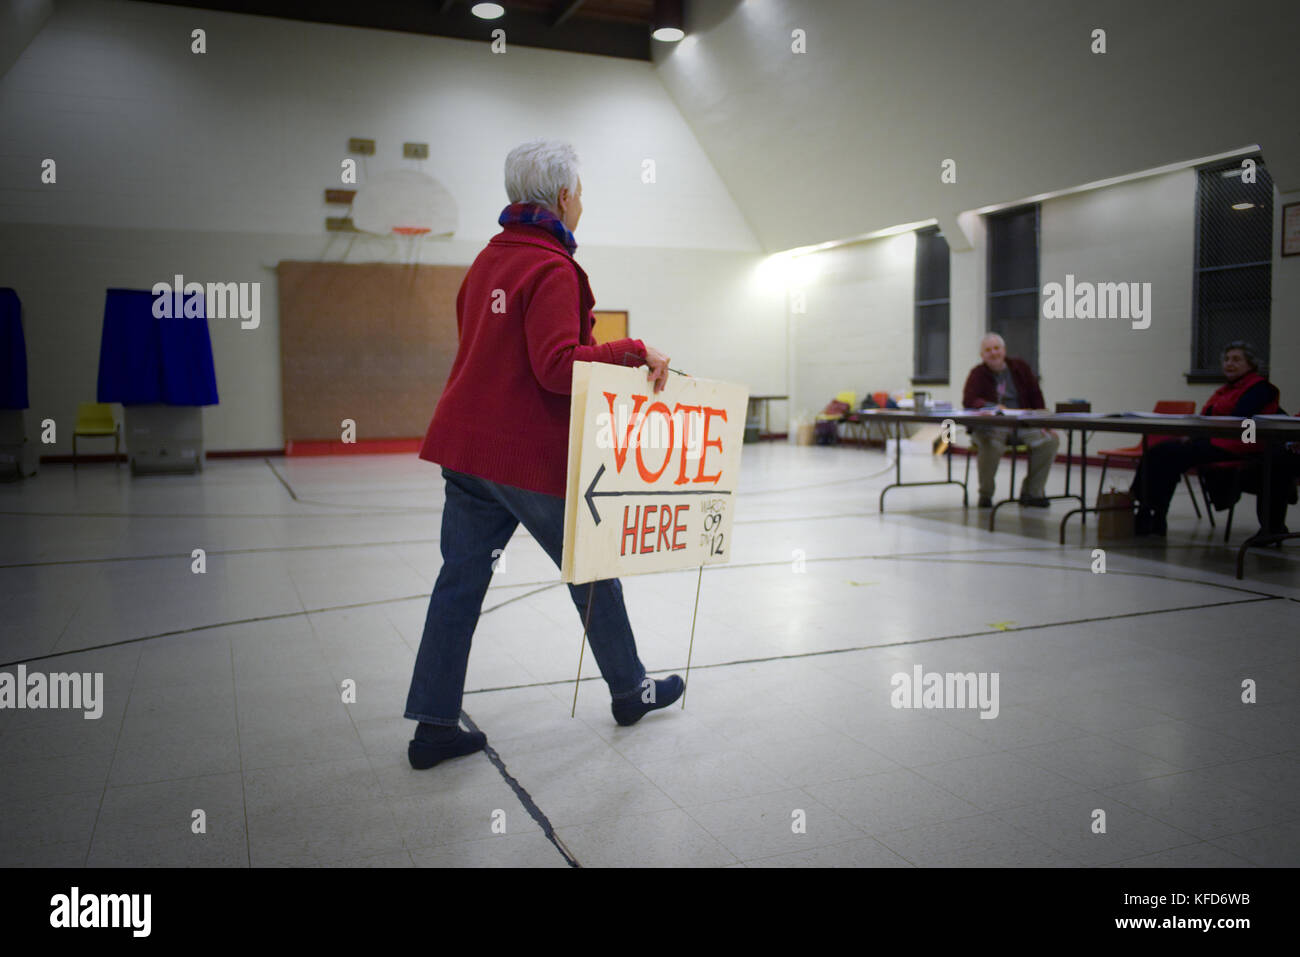 Poll workers wait for voters at a Philadelphia, PA poling station on Election Day. - Stock Image